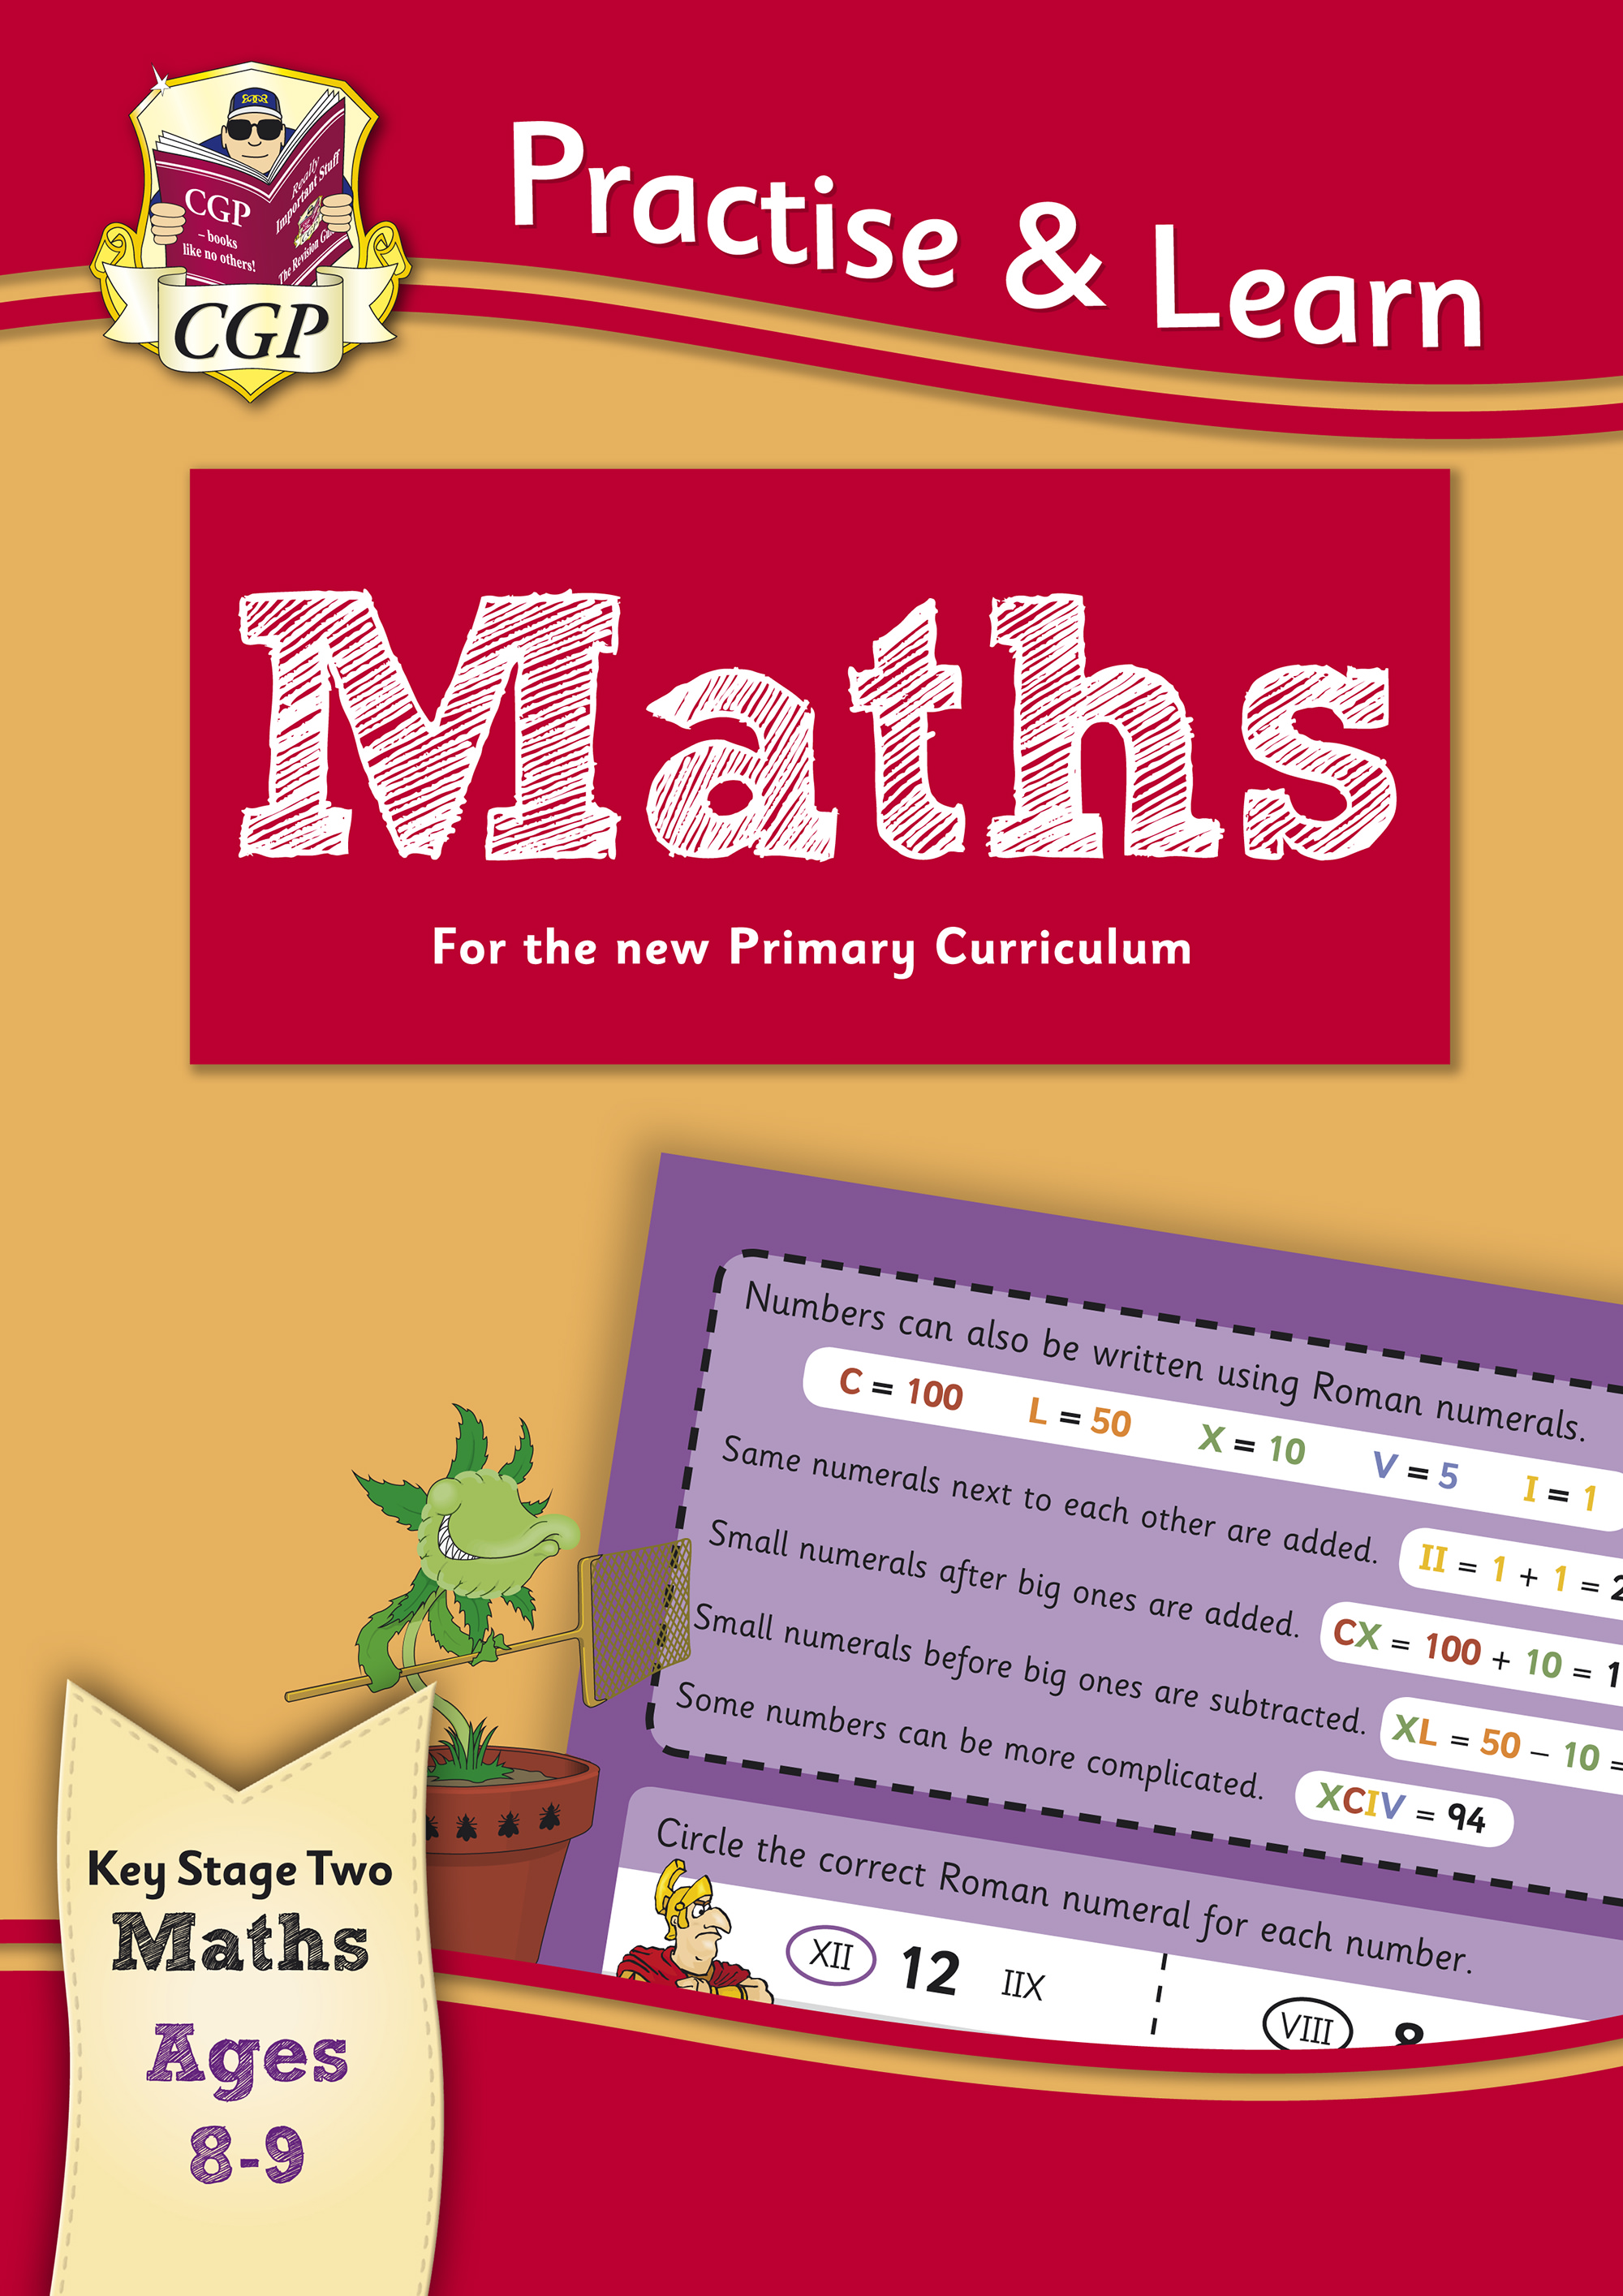 MP4Q22 - New Practise & Learn: Maths for Ages 8-9